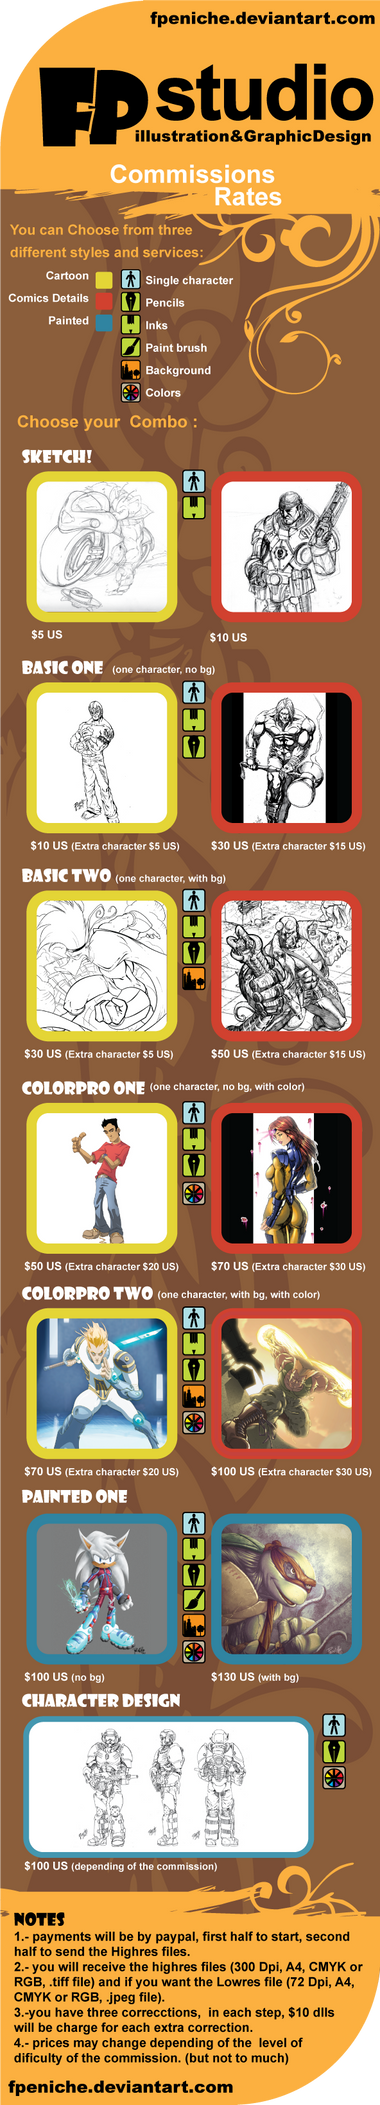 commissions Rates